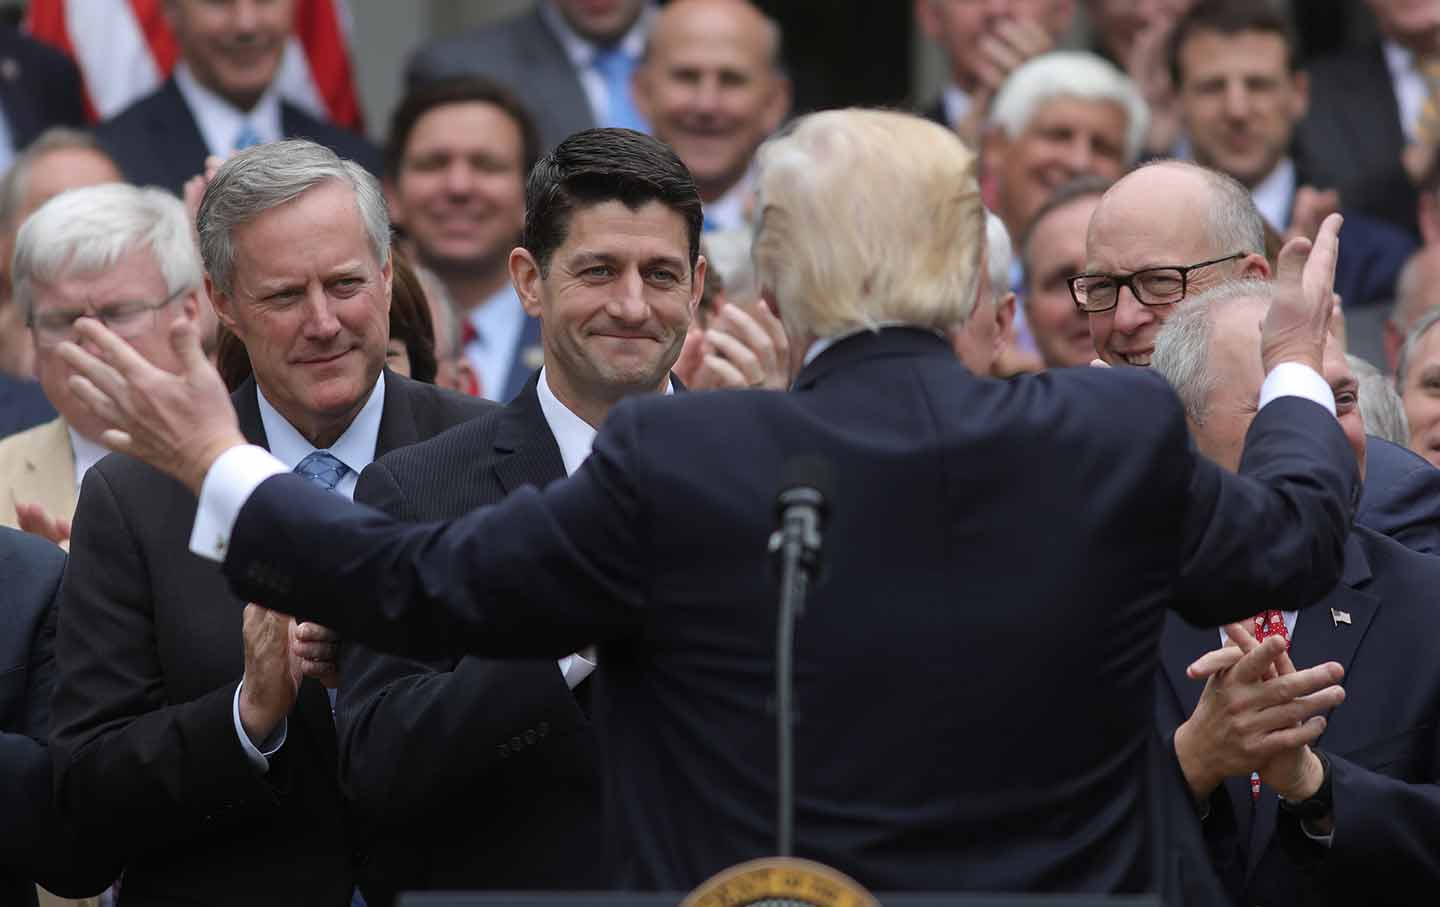 Trump and Republicans celebrate AHCA